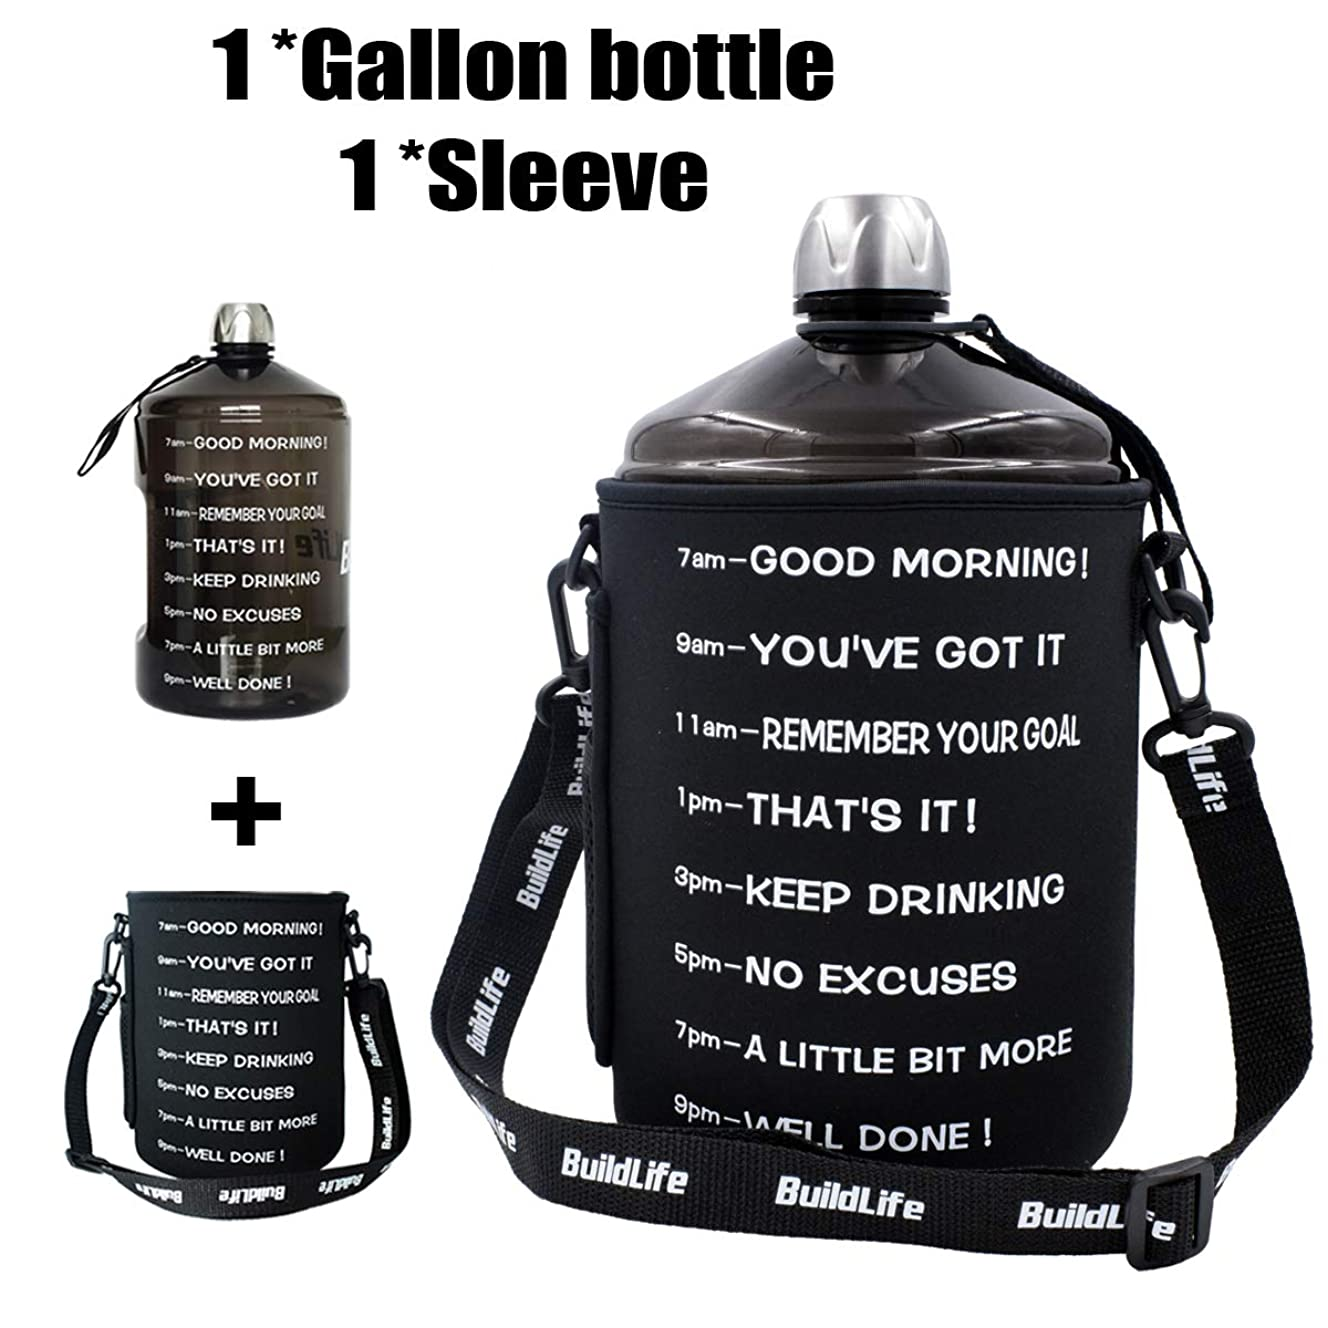 QuiFit 1 Gallon Water Bottle Reusable Leak-Proof Drinking Water Jug for Outdoor Camping BPA Free Plastic Sports Water Bottle with Daily Time Marked